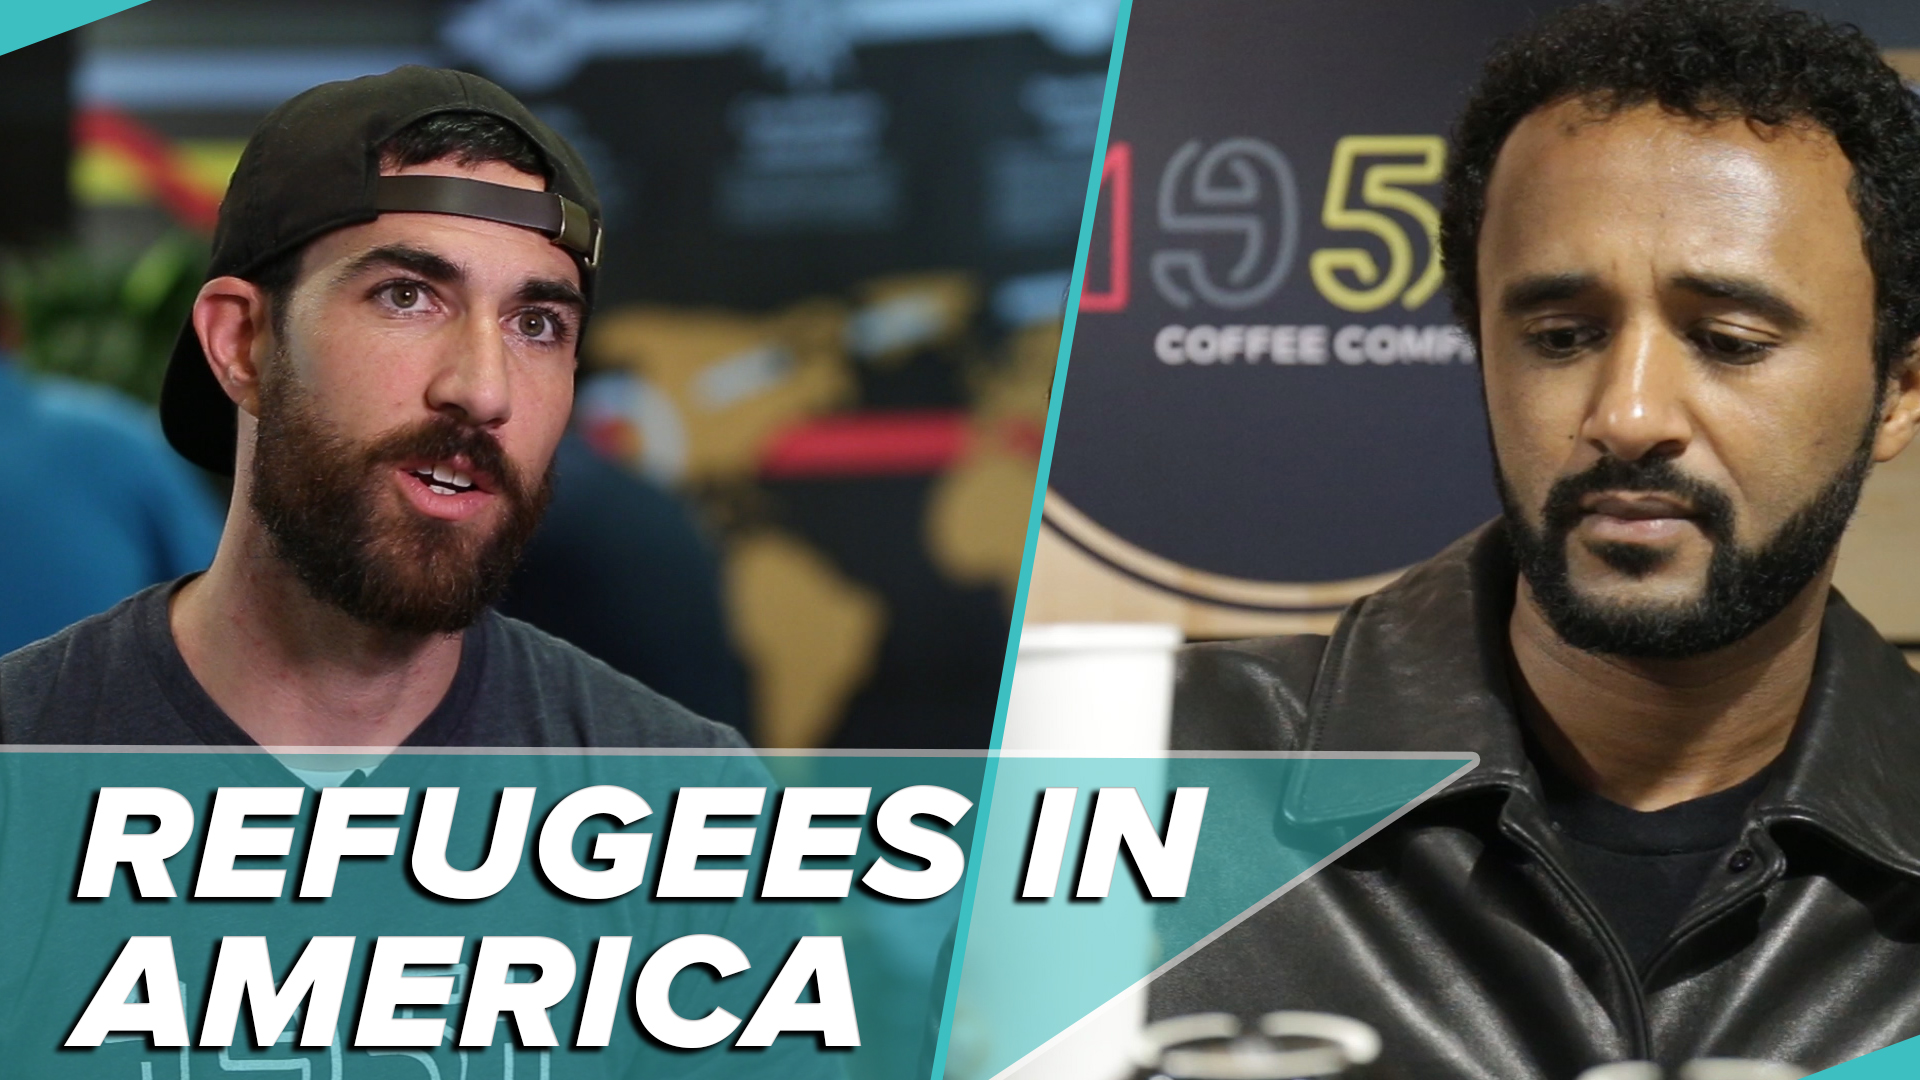 Helping Refugees One Latte At A Time